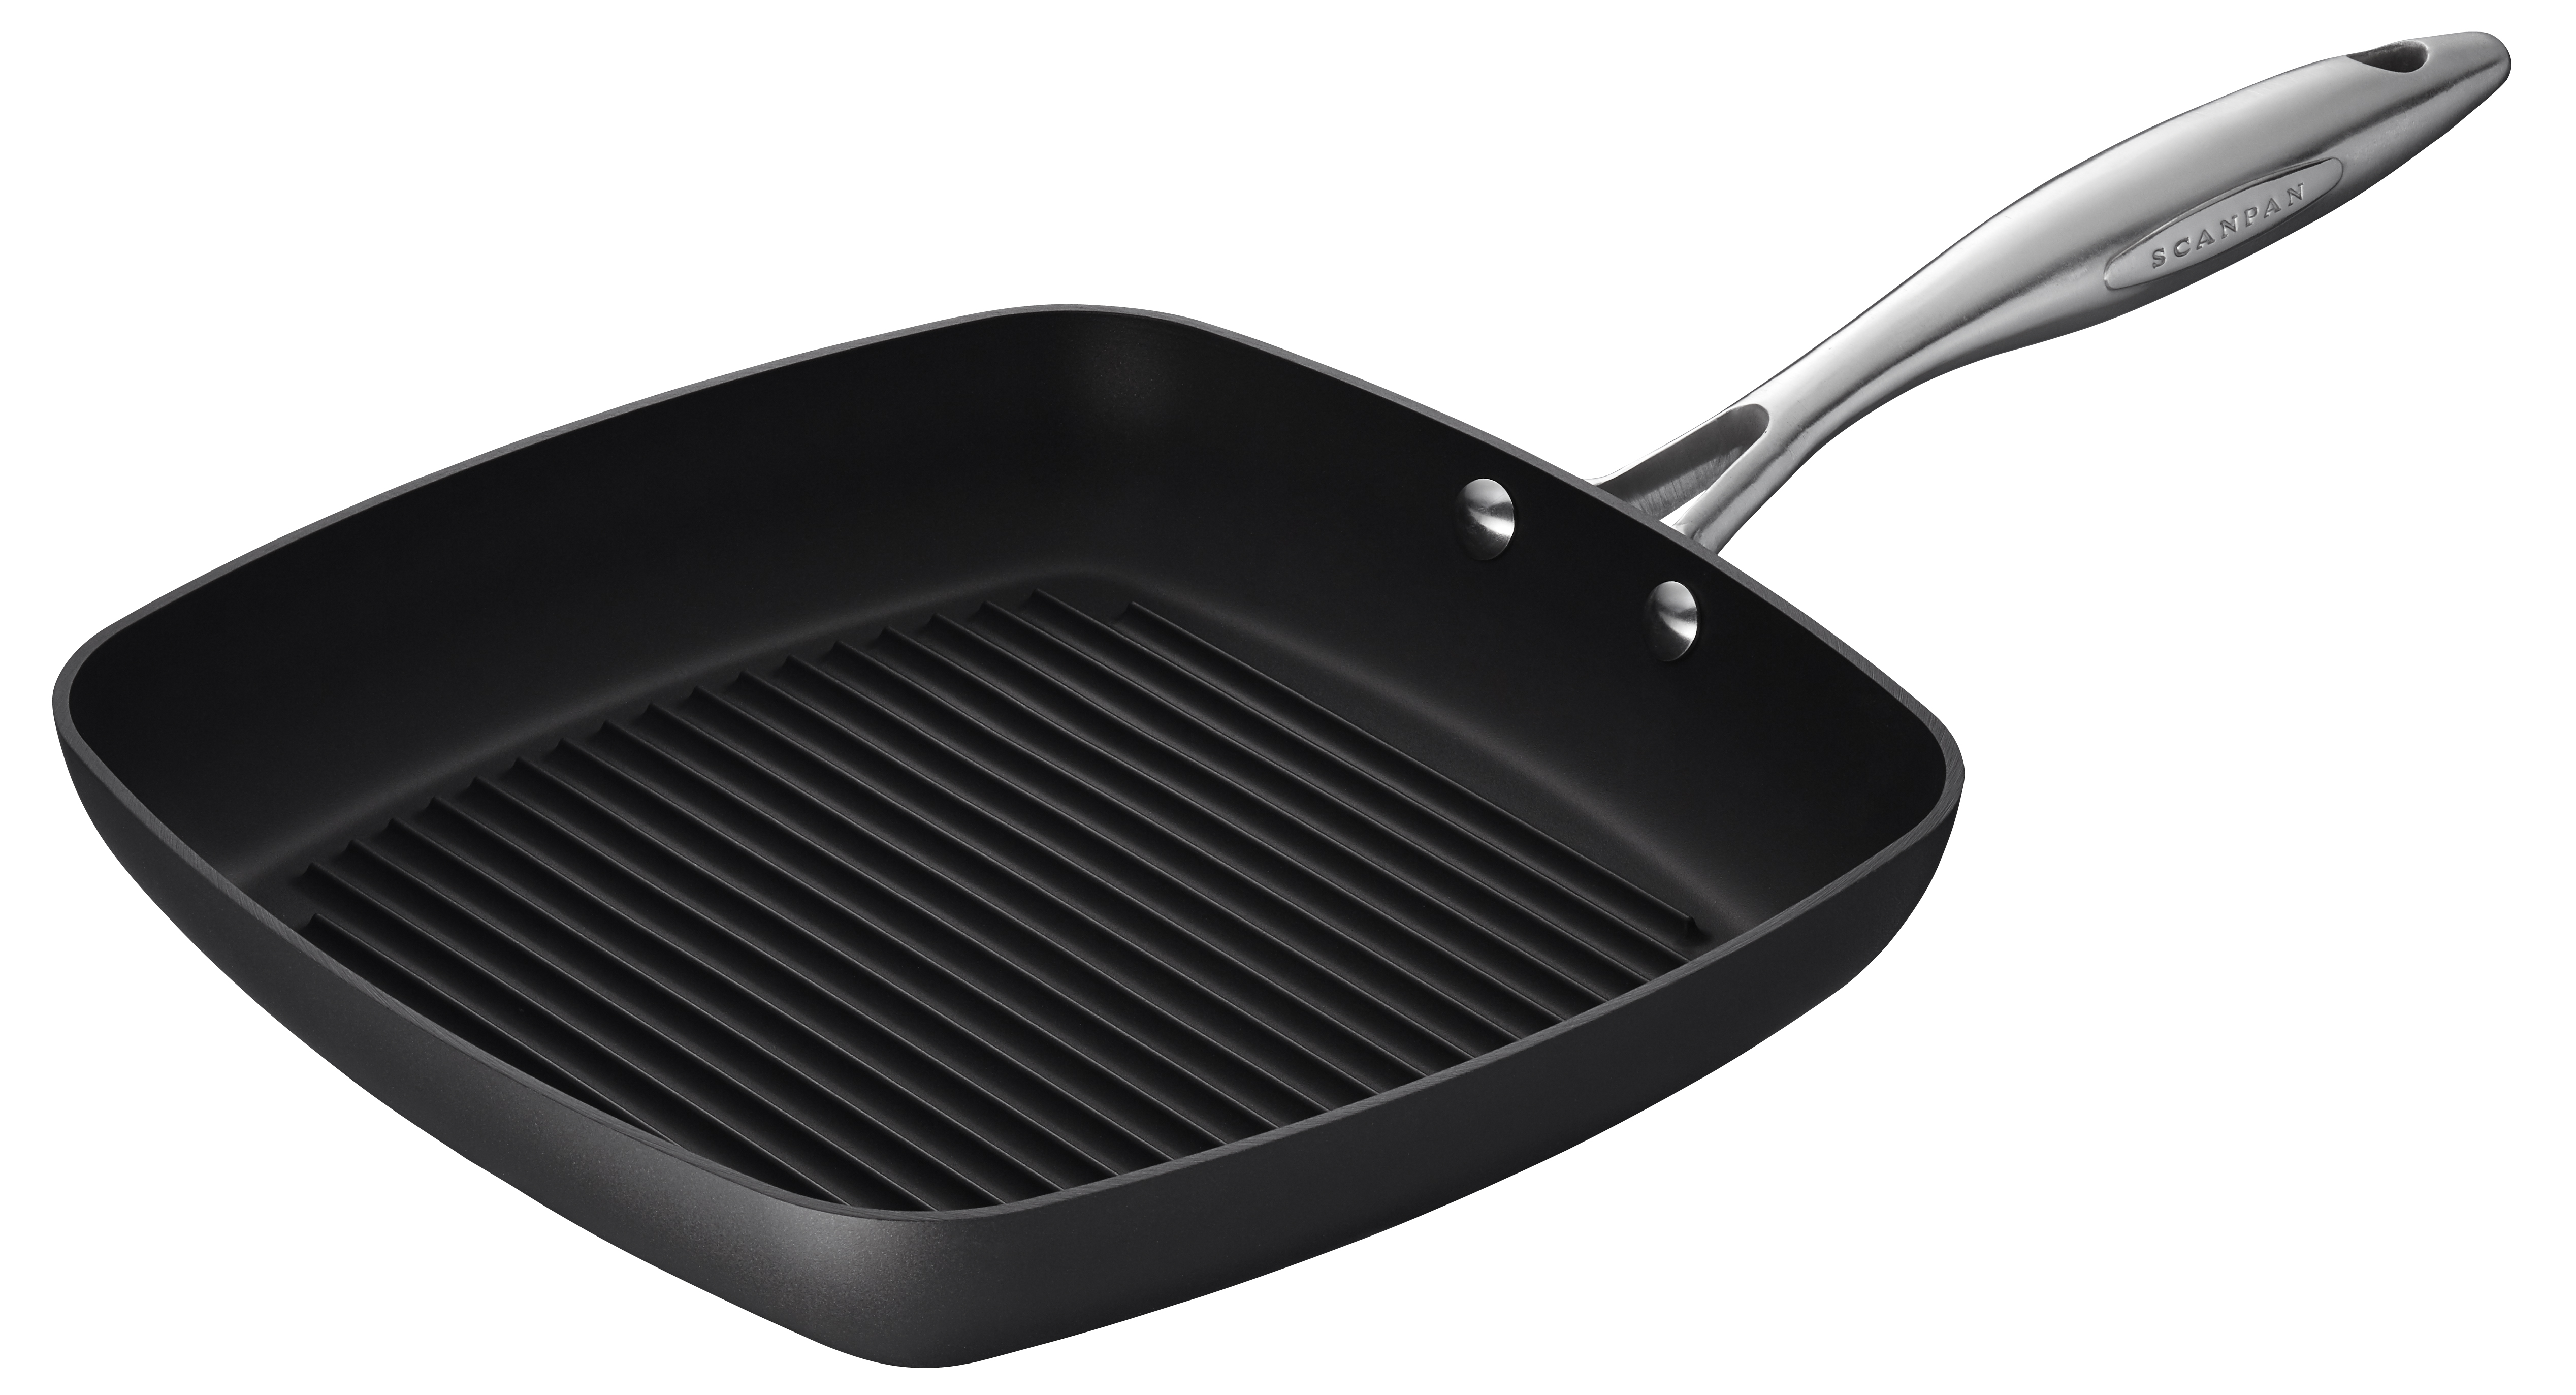 27x27cm Grill Pan - Professionssional, 27 x 27cm